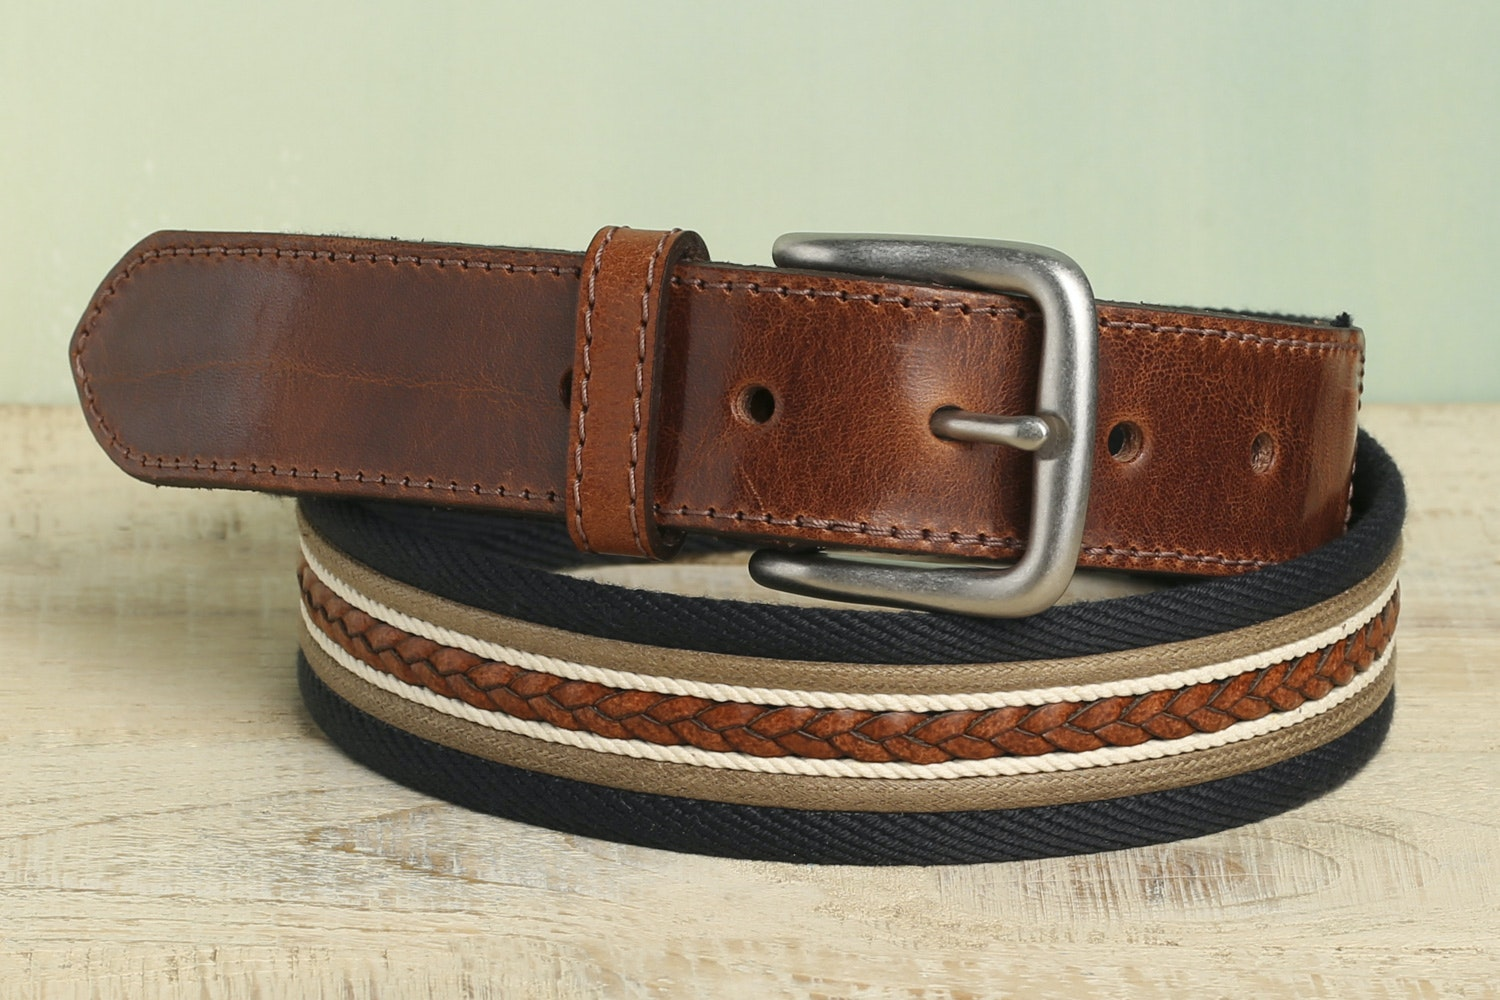 British Belt Co. Tilford Belt